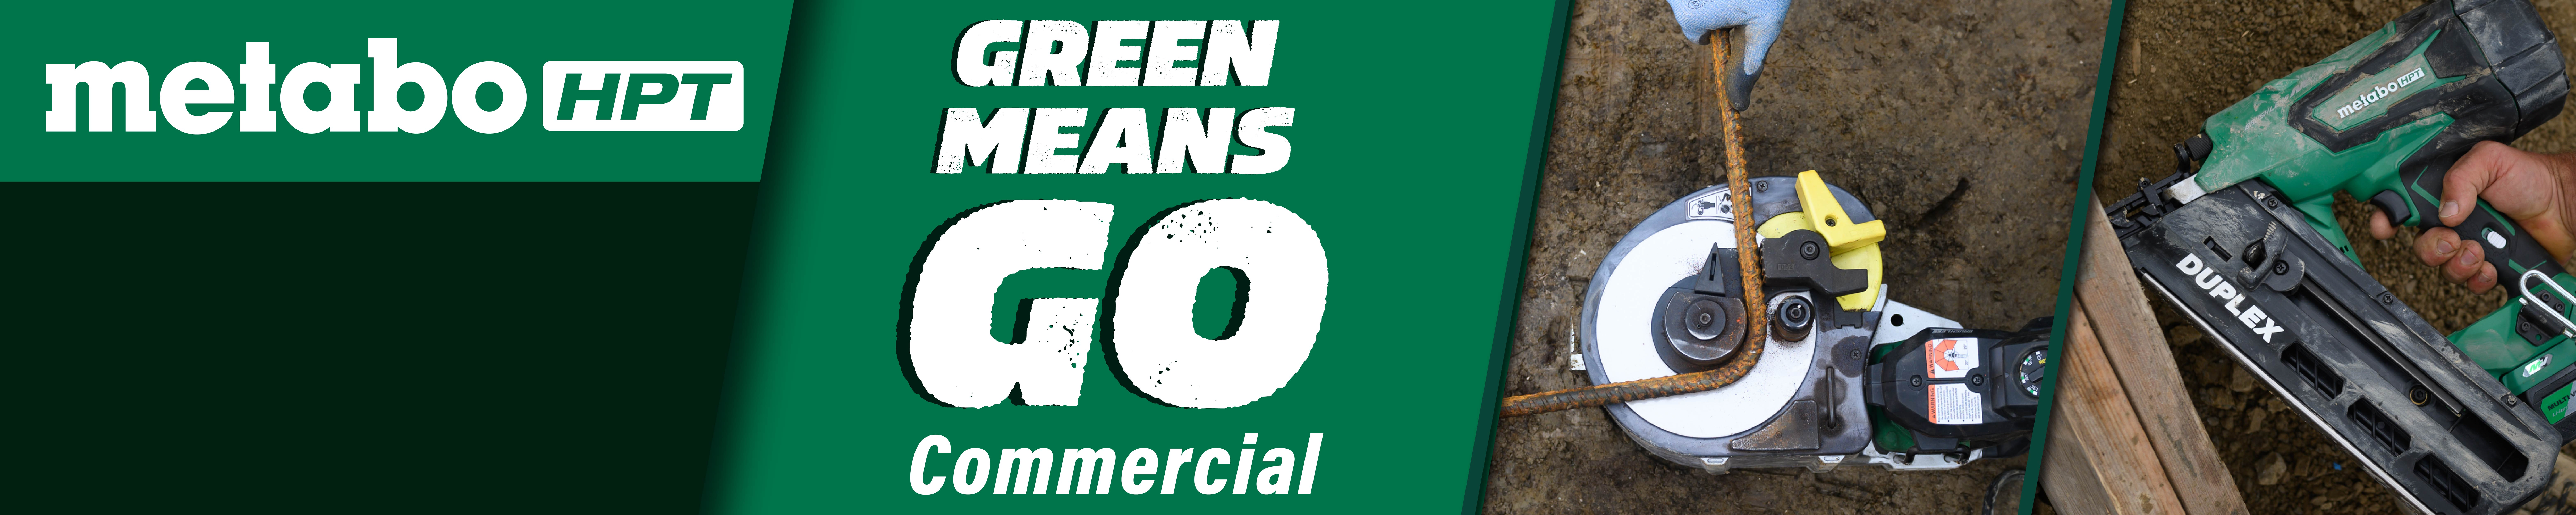 Metabo HPT Green Means Go Commercial